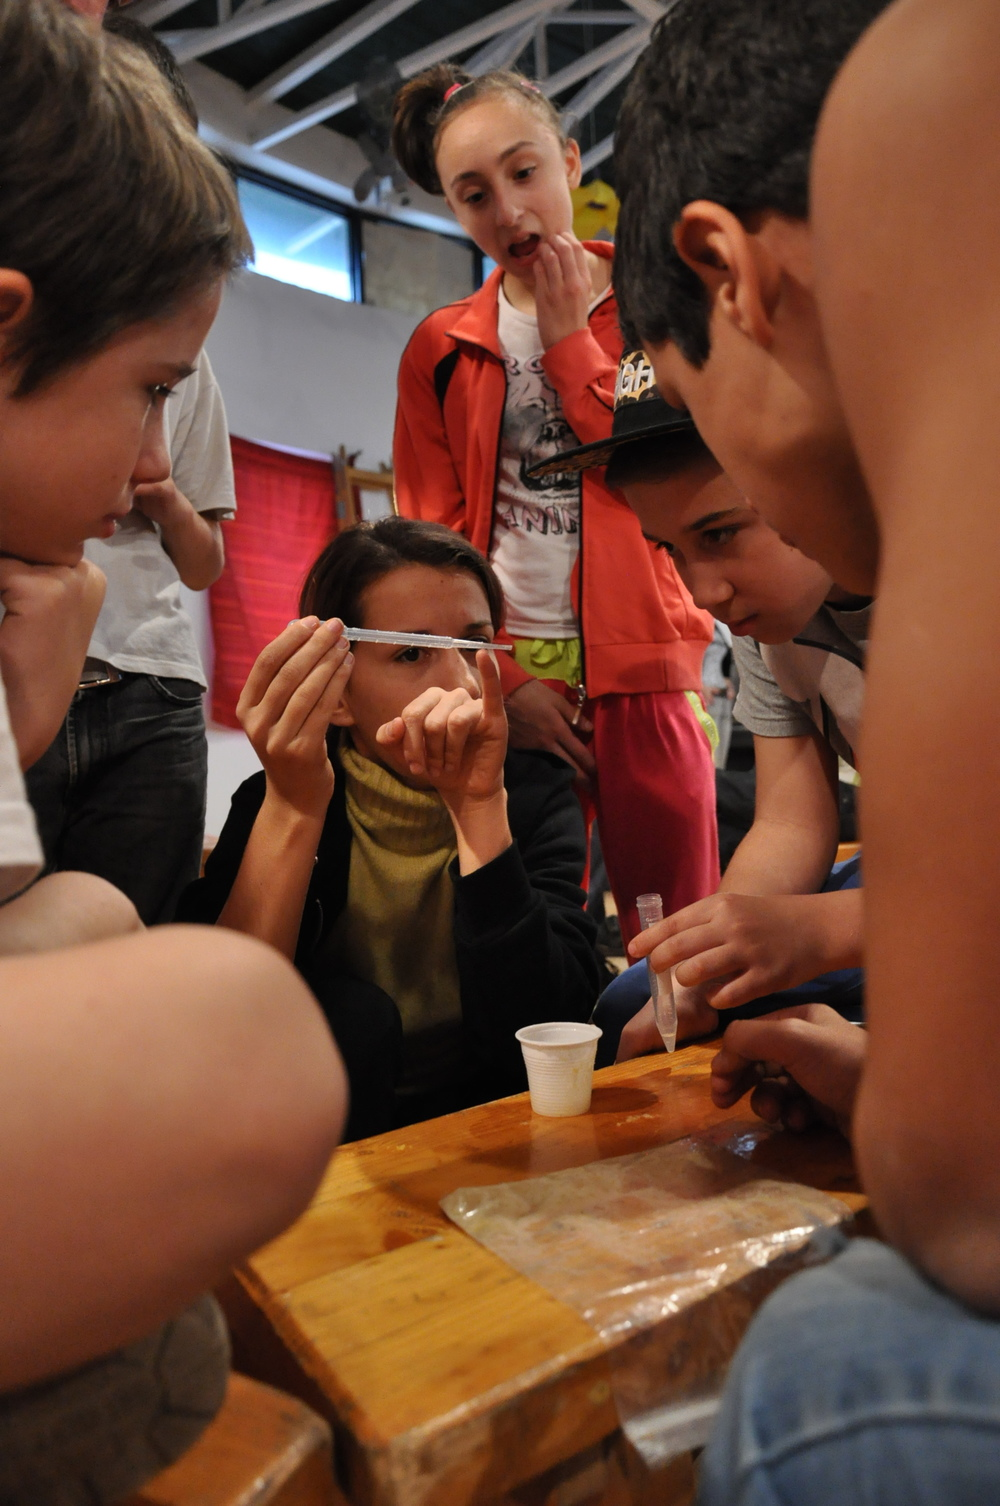 DNA extraction, Burratino vocational school for minorities